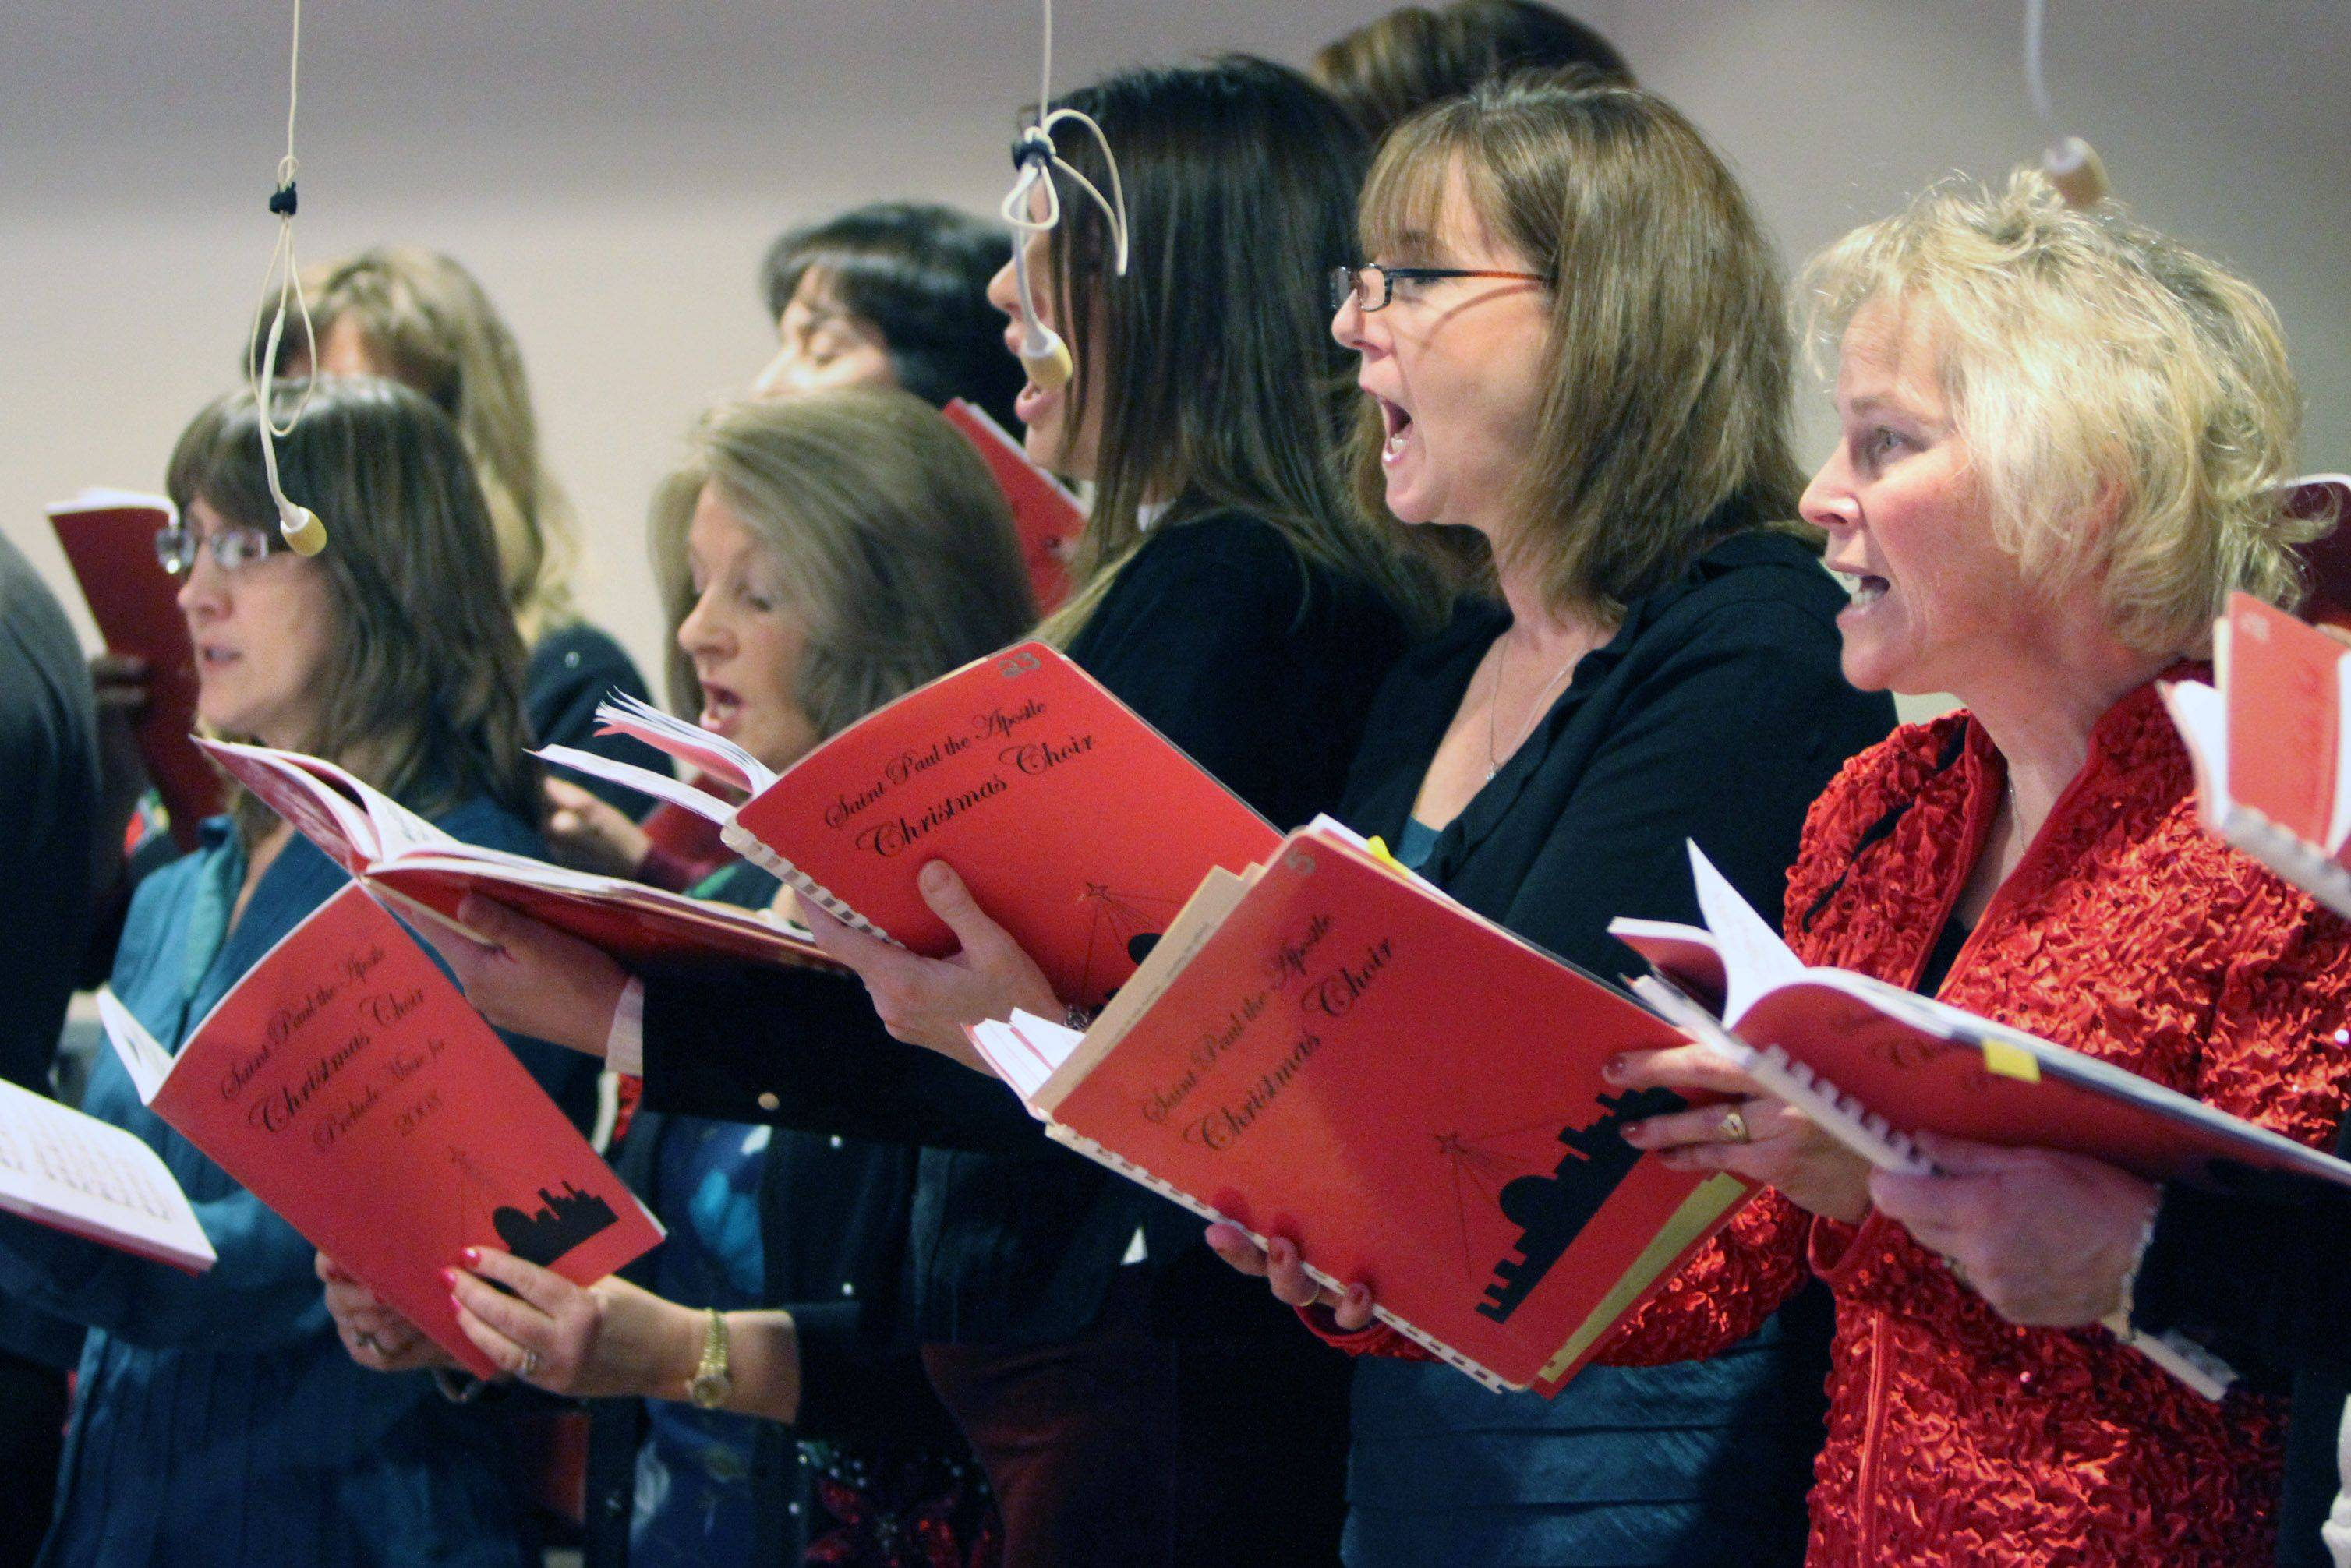 St. Paul the Apostle Catholic Church held Christmas carols and hand bell music before mass on Christmas Eve in Gurnee.